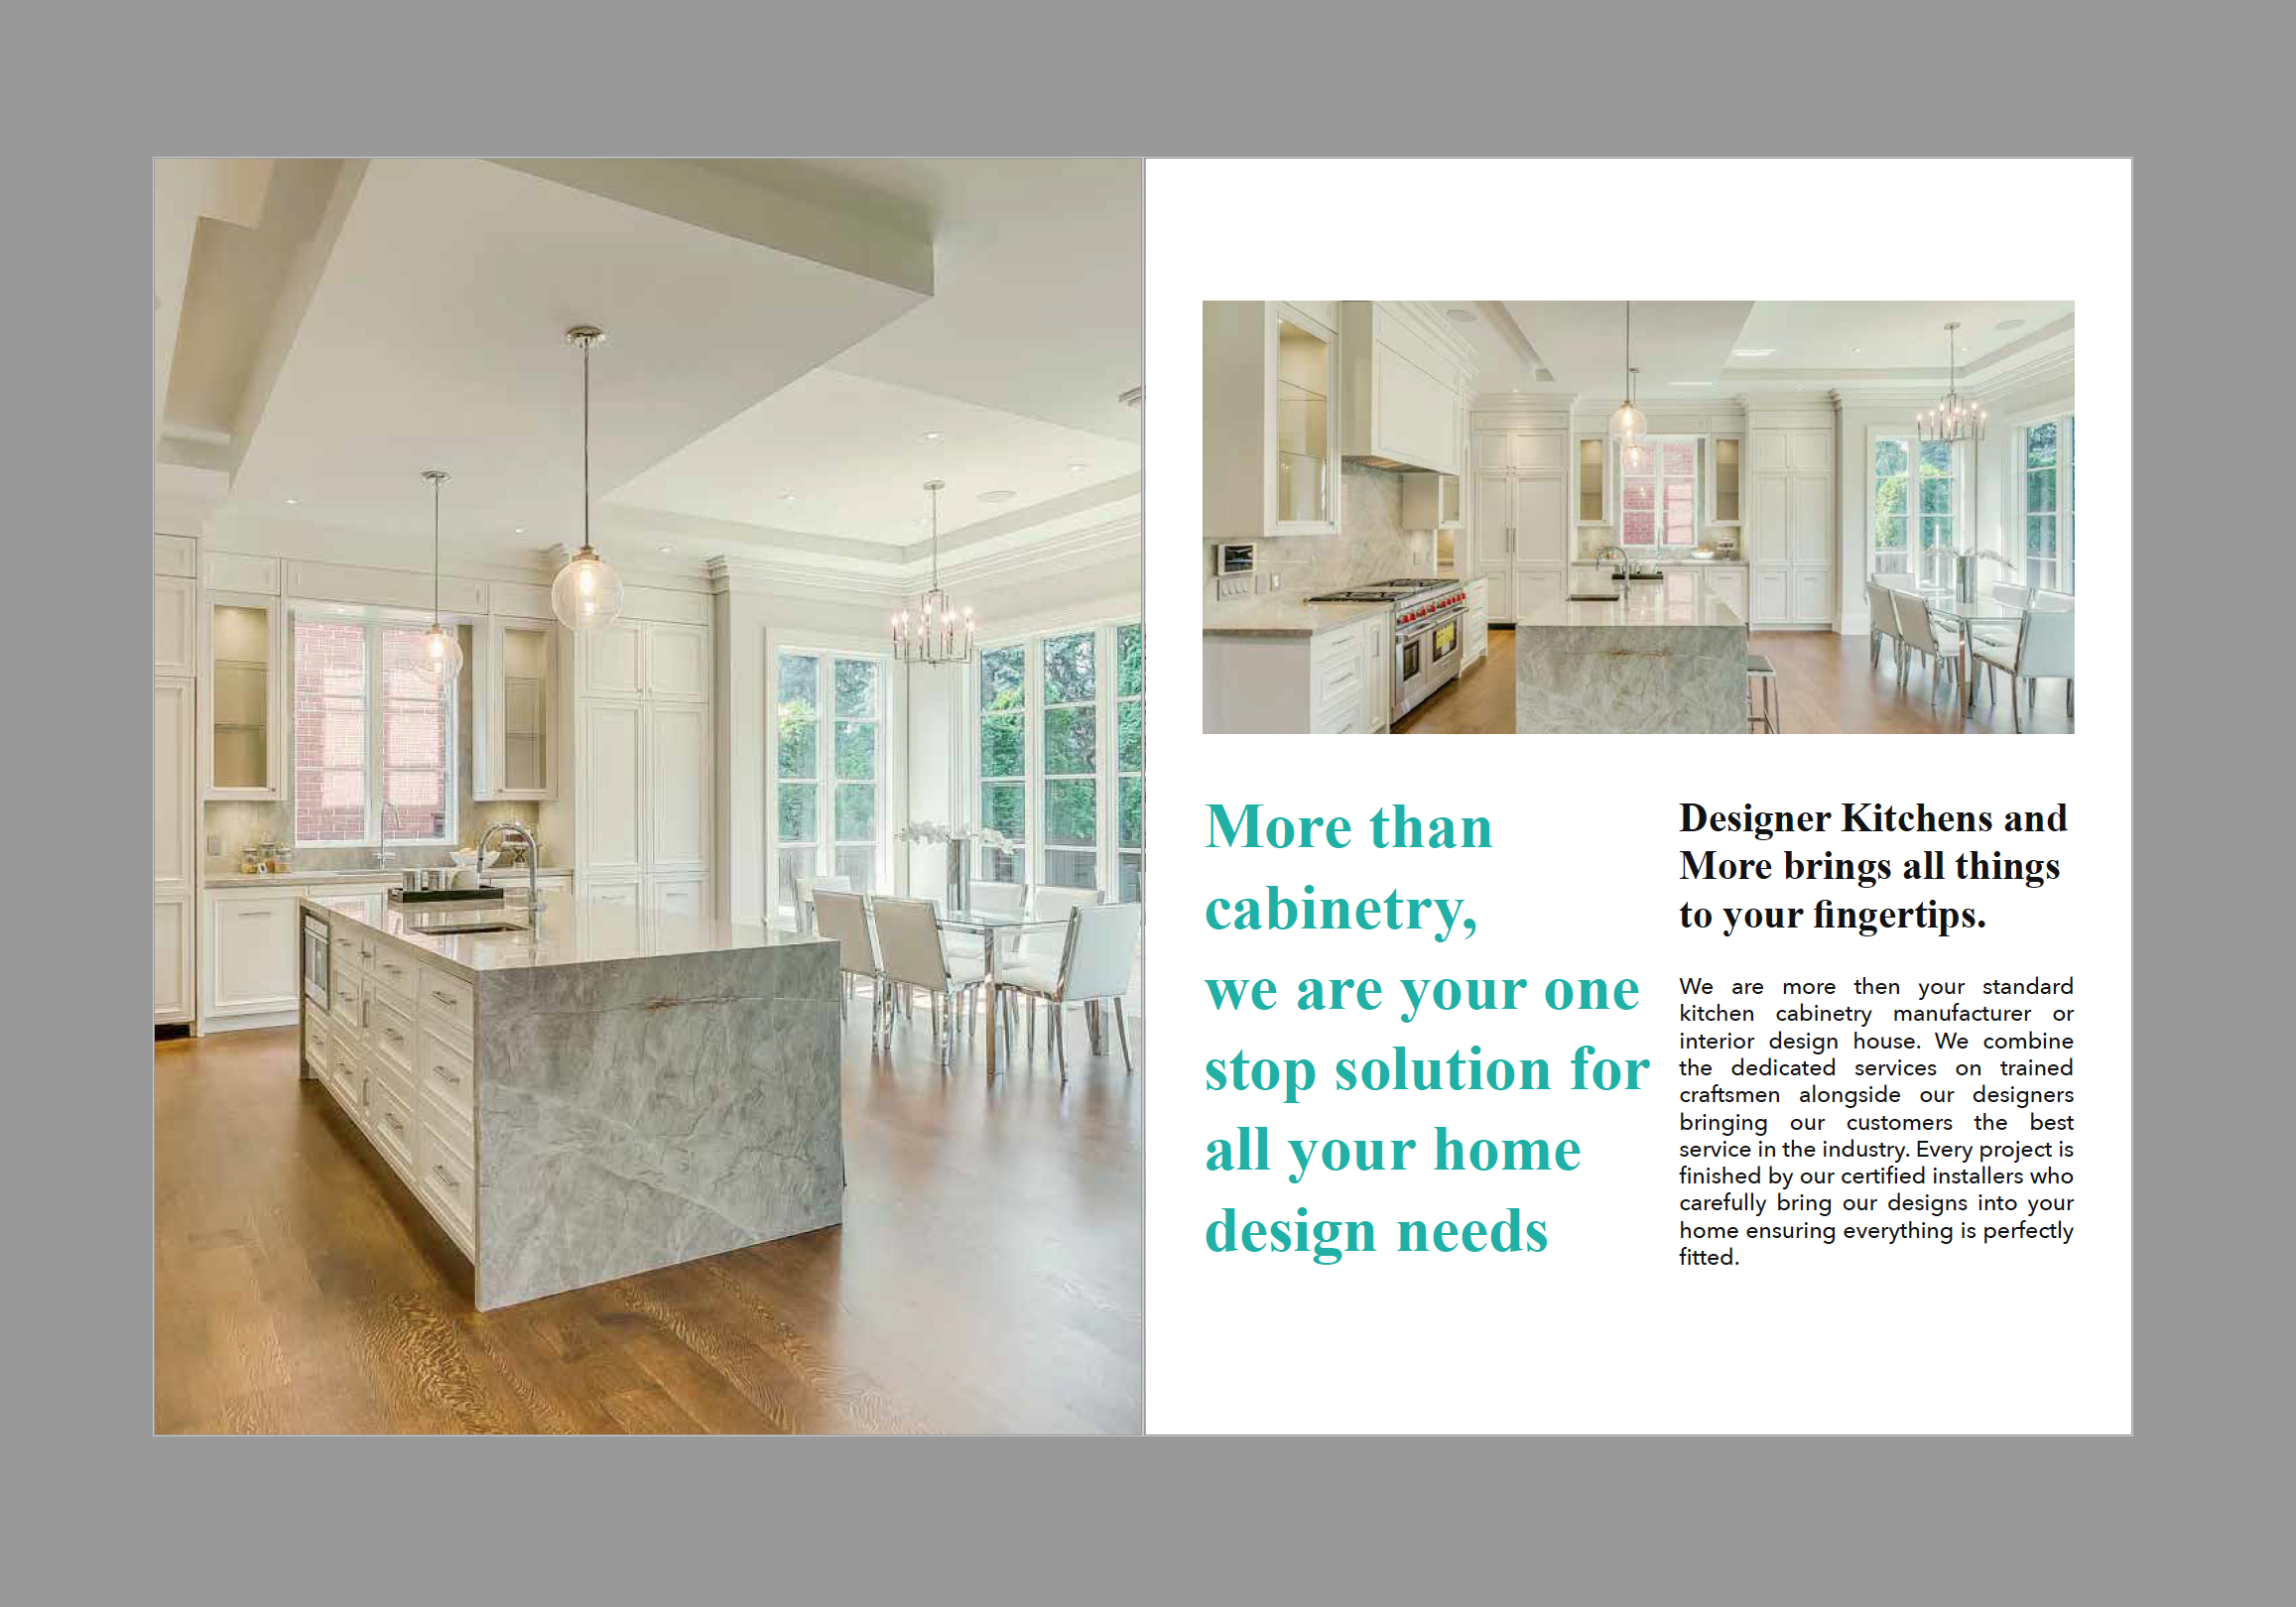 AWARD WINNING DESIGNERS - Tatjana's team of kitchen specialists are dedicated to bringing your kitchen dreams to reality. Below are some of our recent projects and favourite designs.